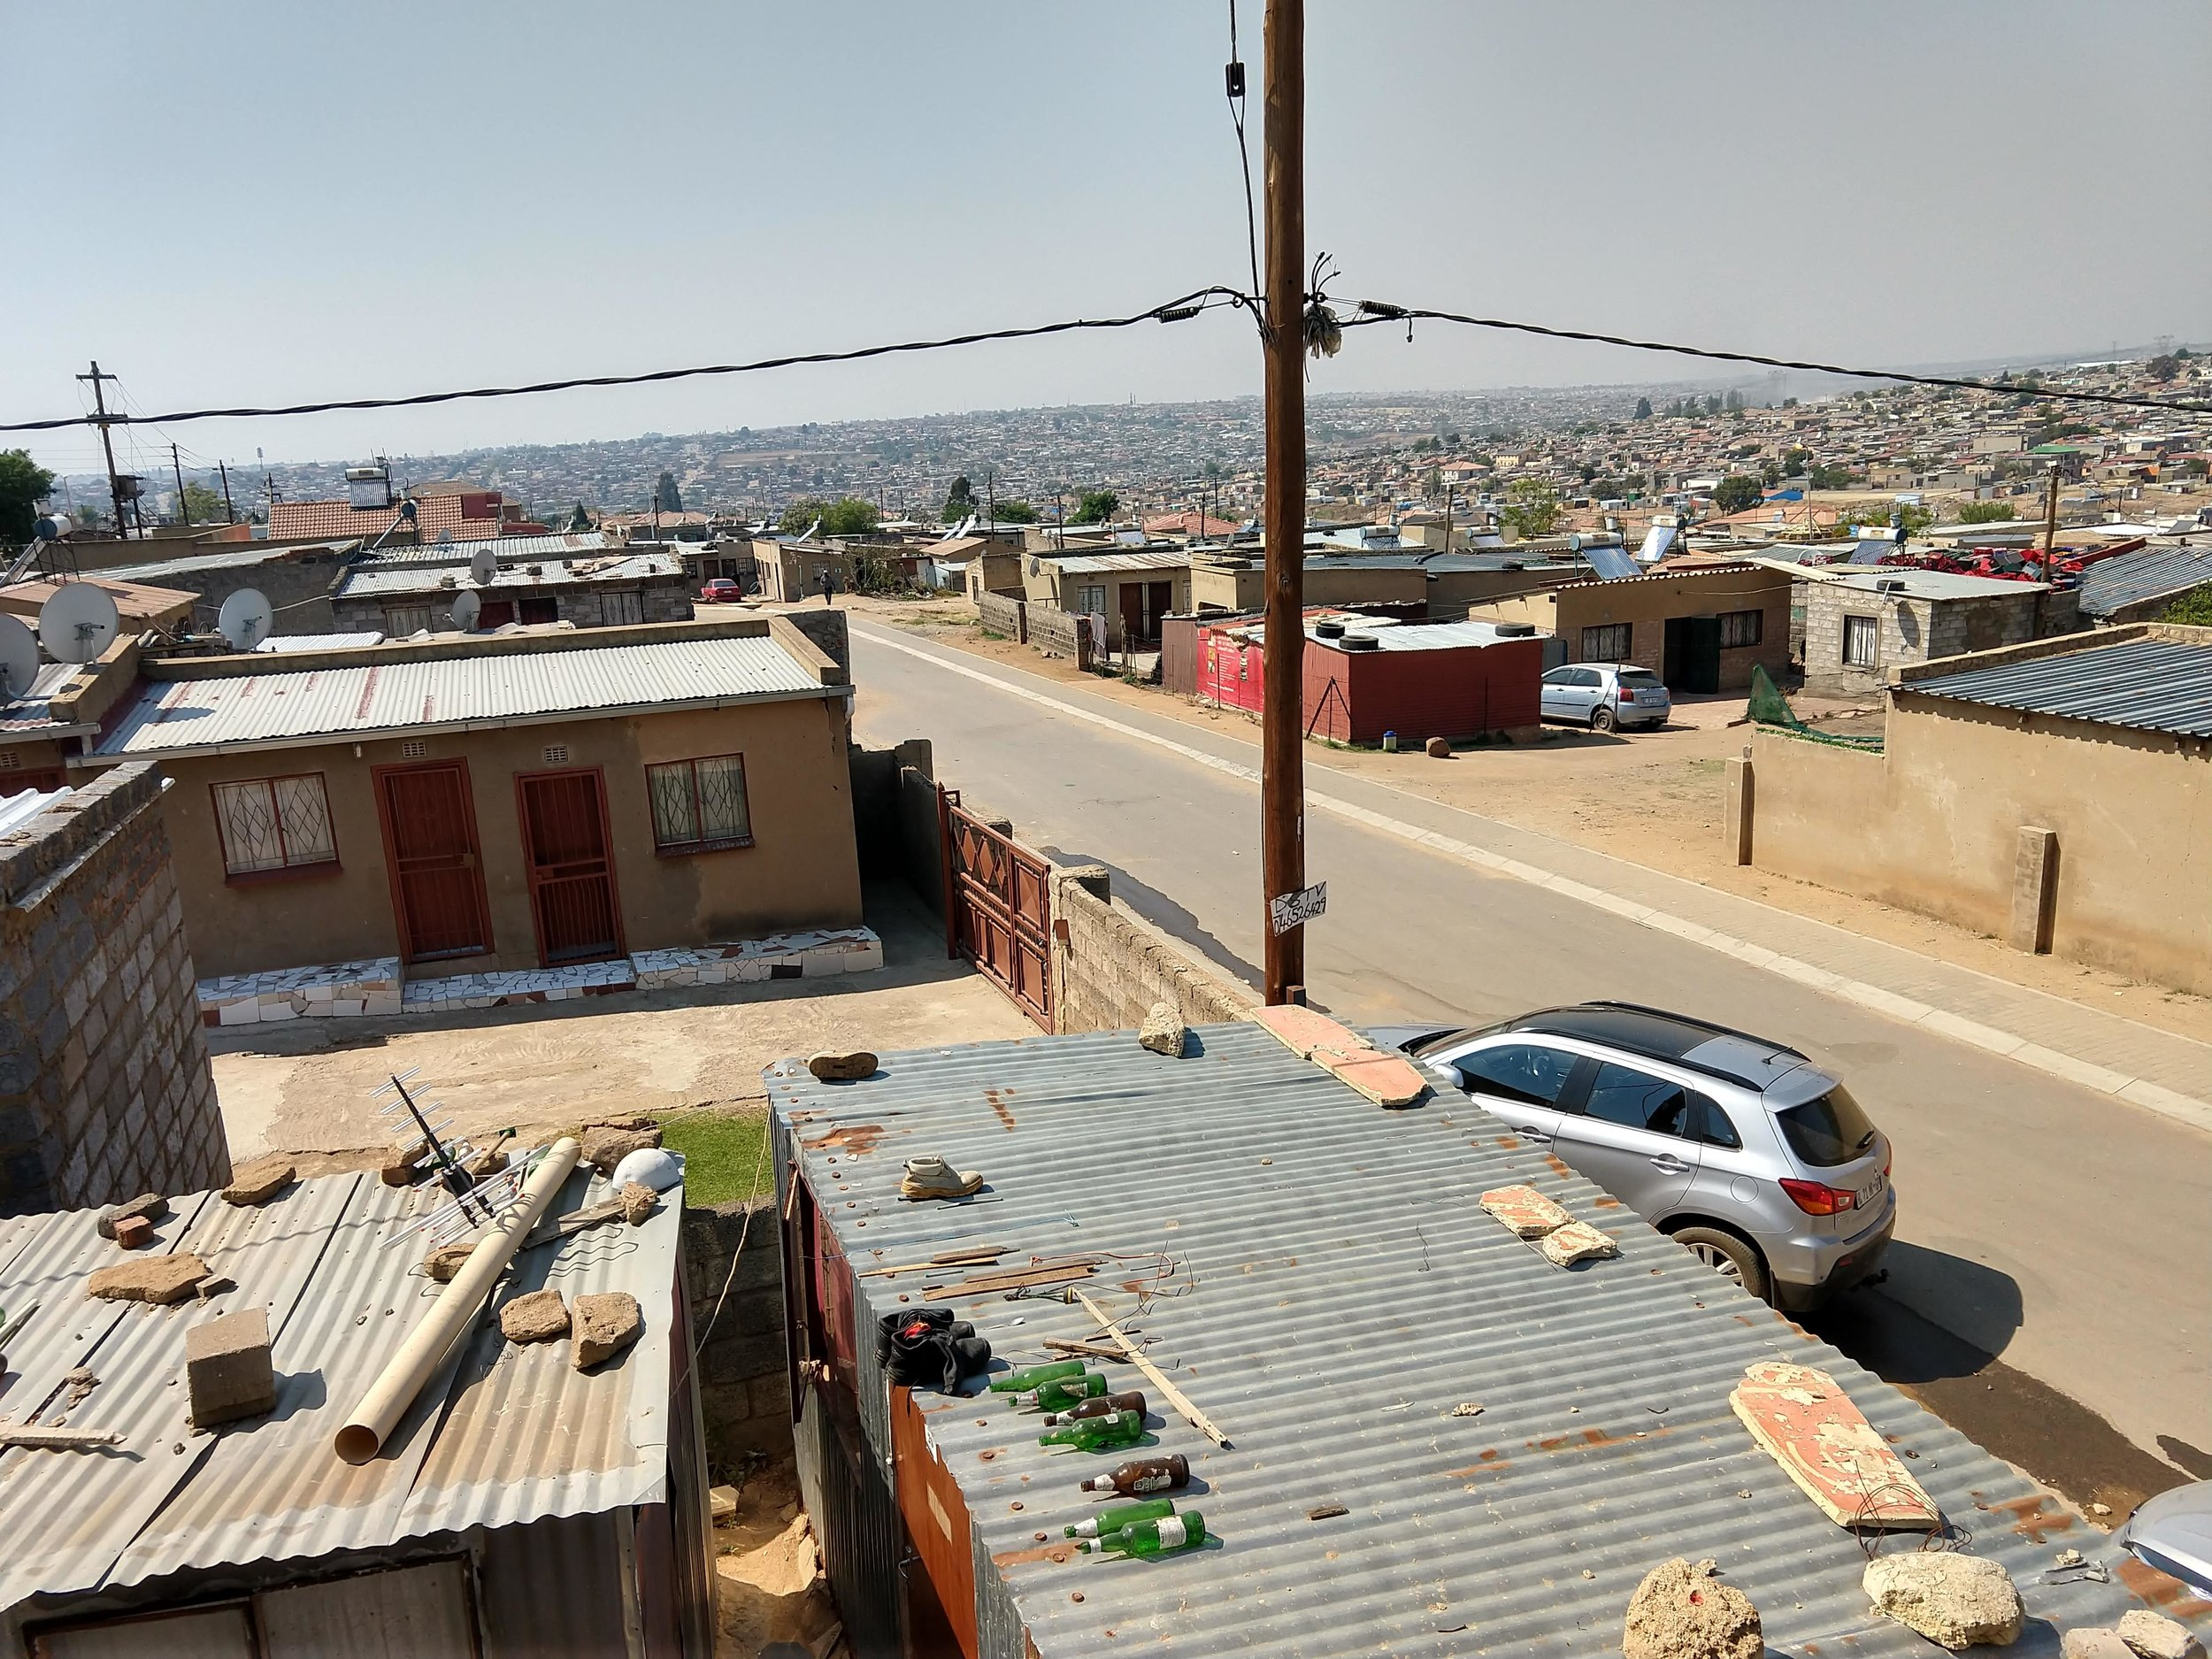 Homes in the Tembisa township I visited outside Pretoria, South Africa.